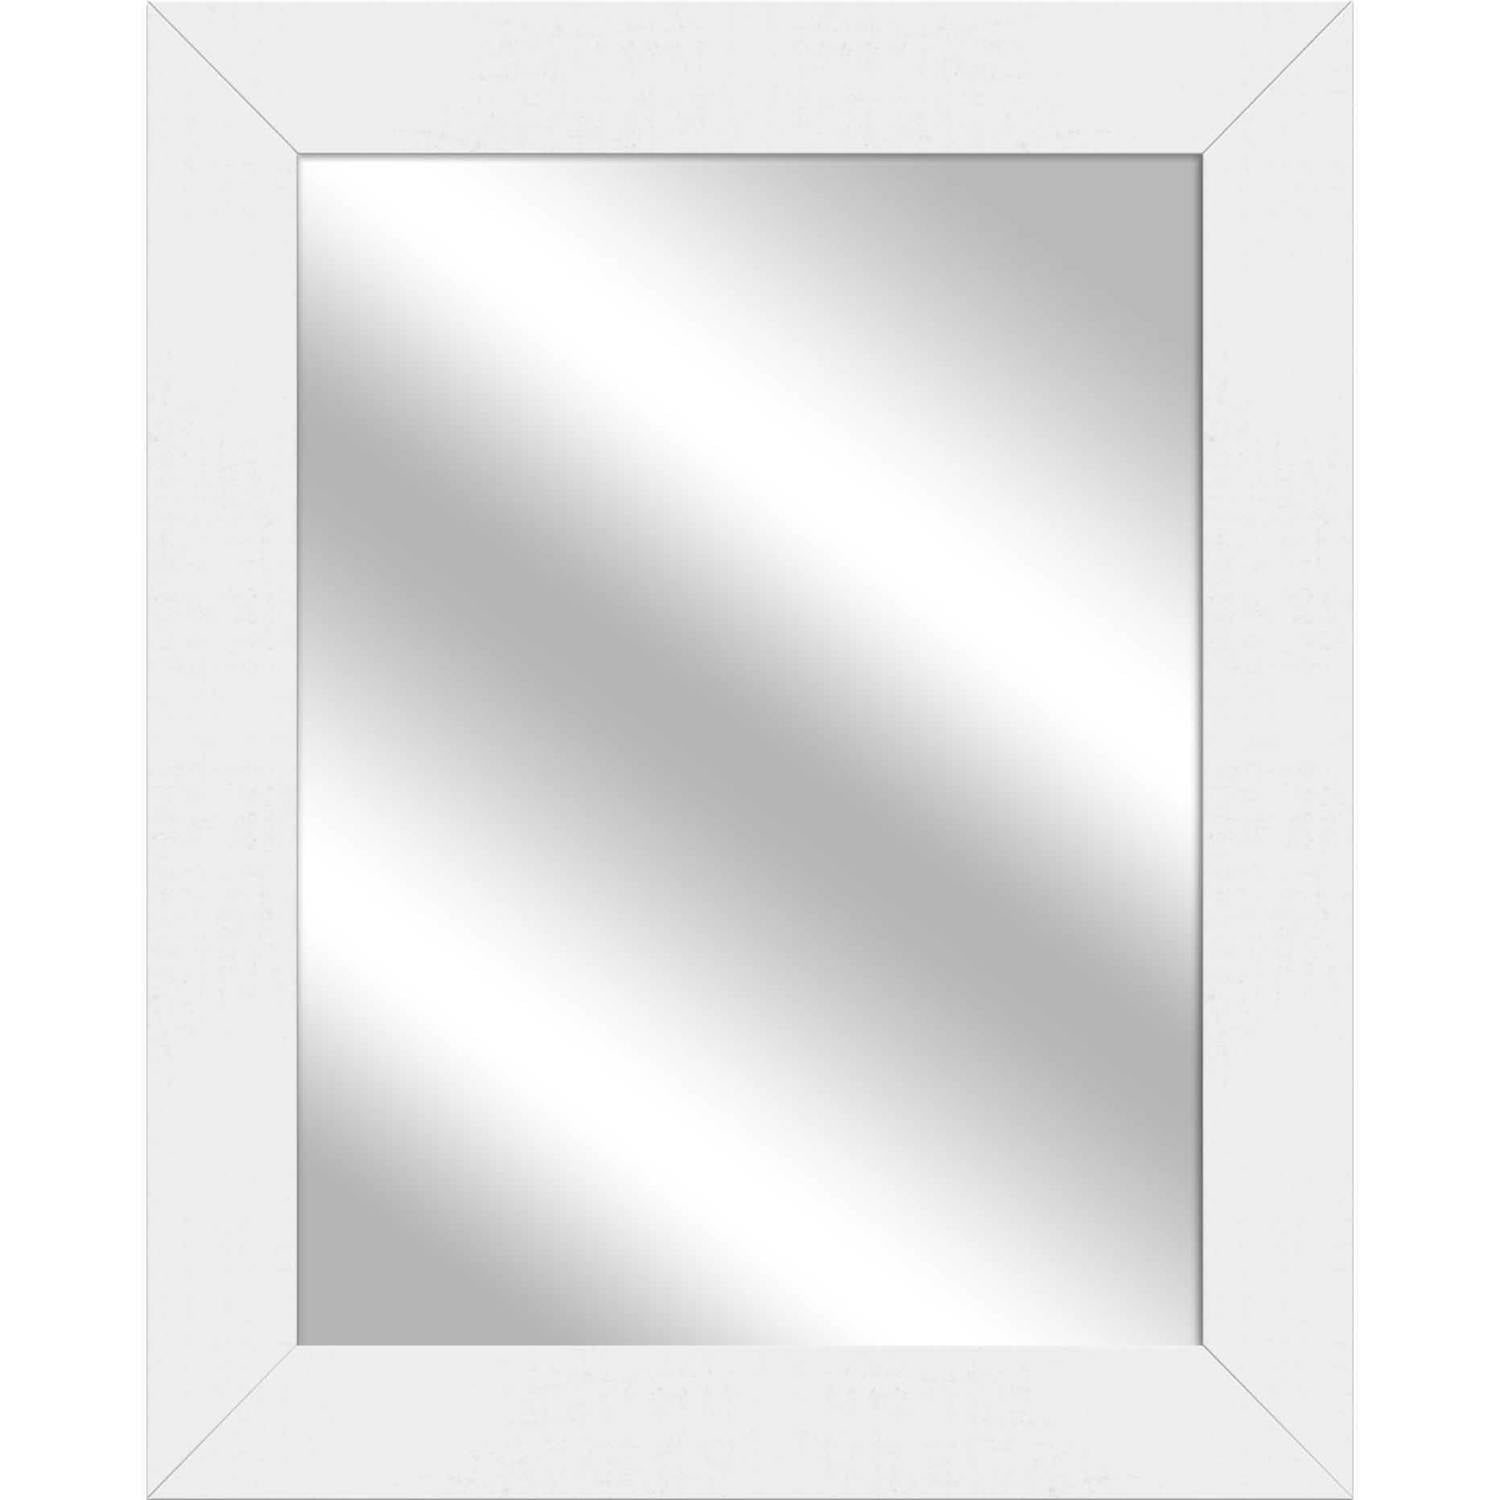 Vanity Mirror, White, 25.5x31.5 by PTM Images